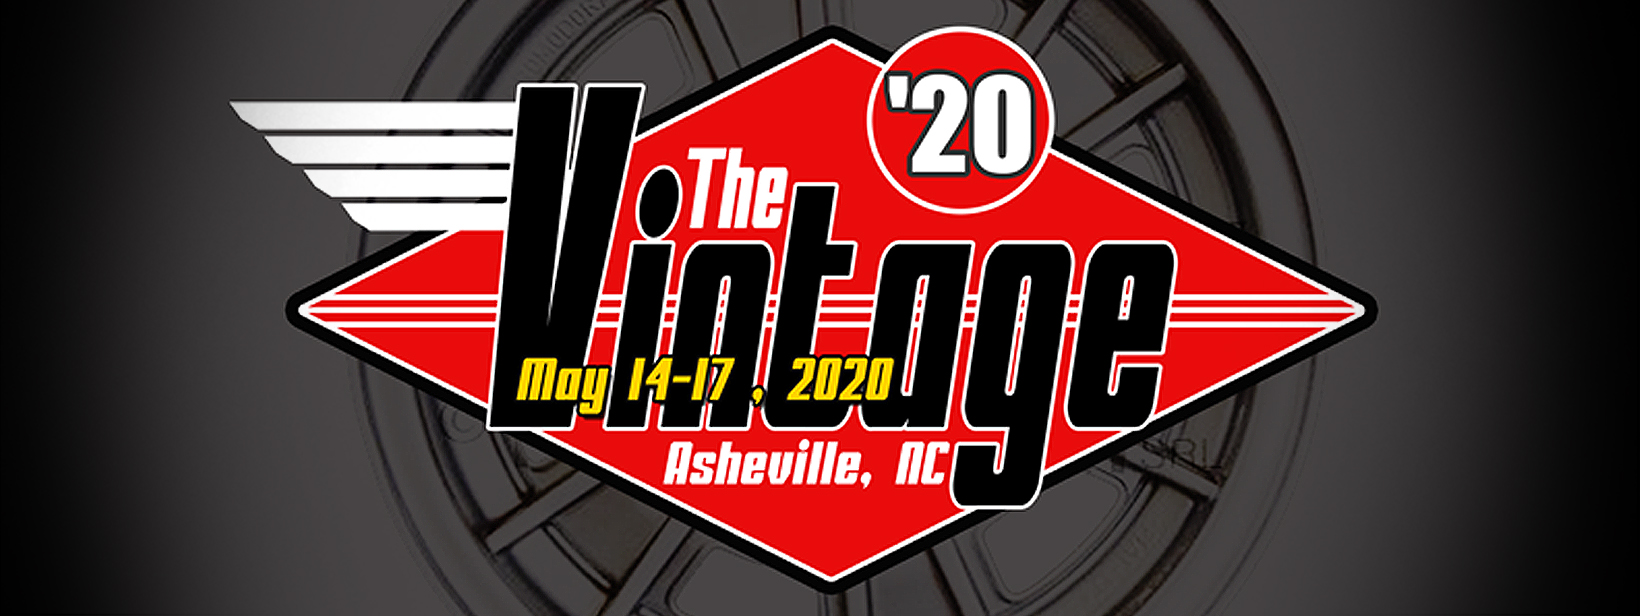 2020 The Vintage (Asheville, NC)